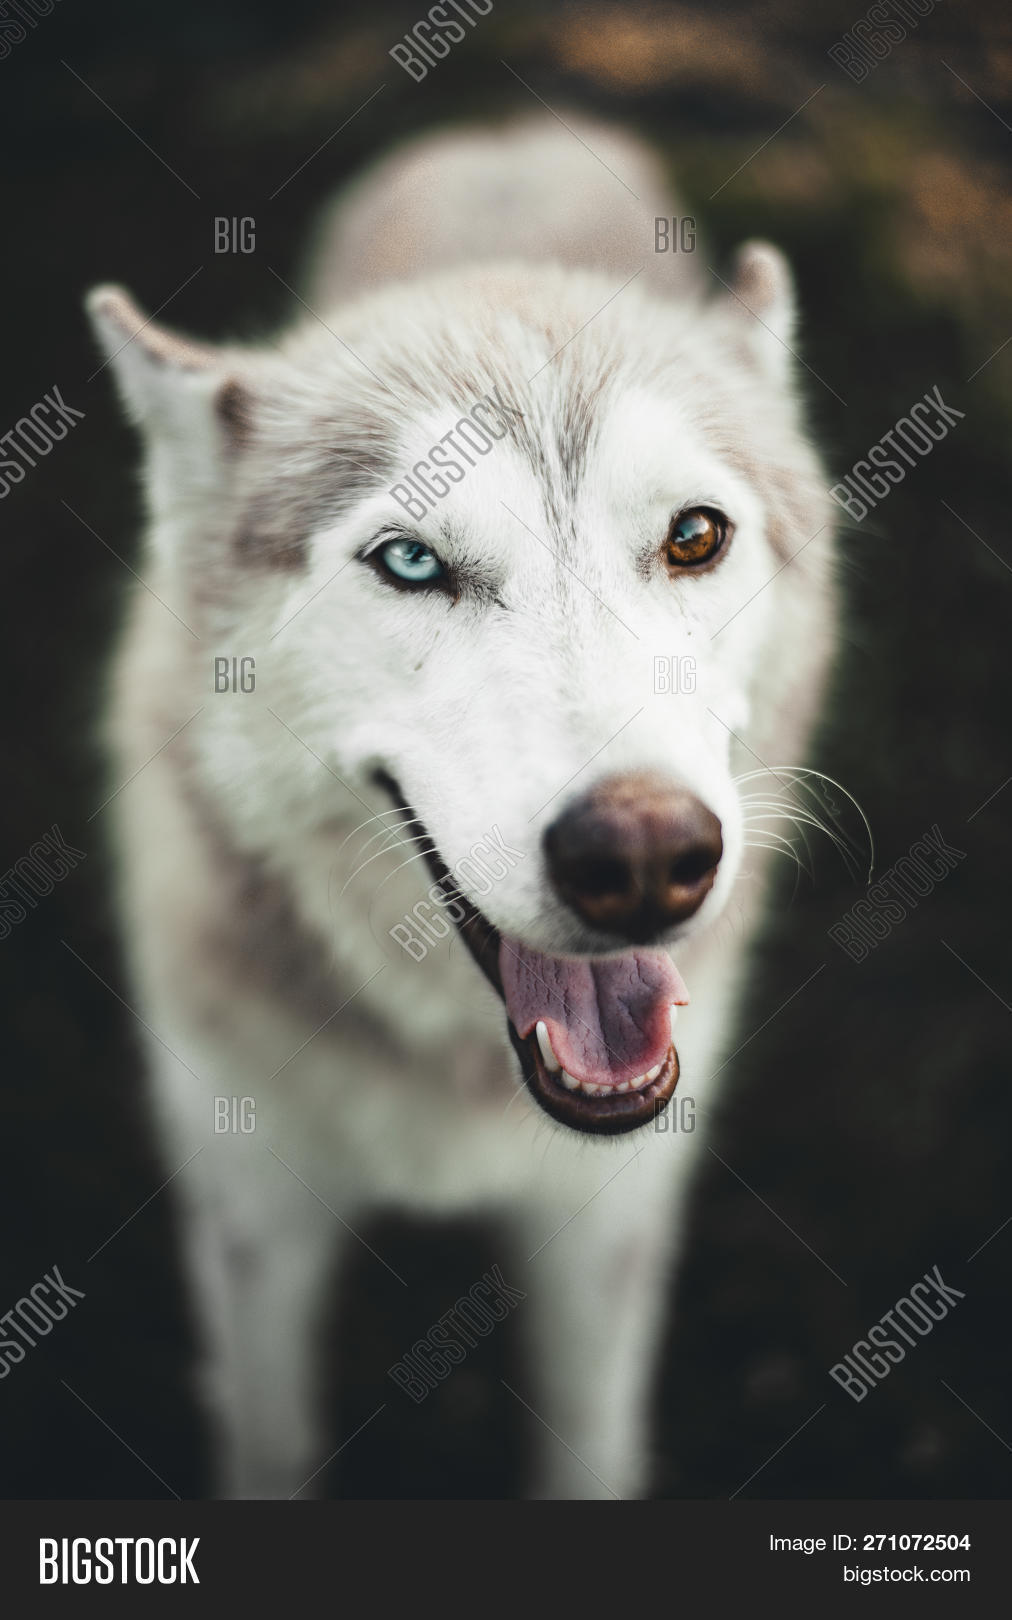 🔥 Cute White And Brown Siberian Husky Dog With Amazing Rare